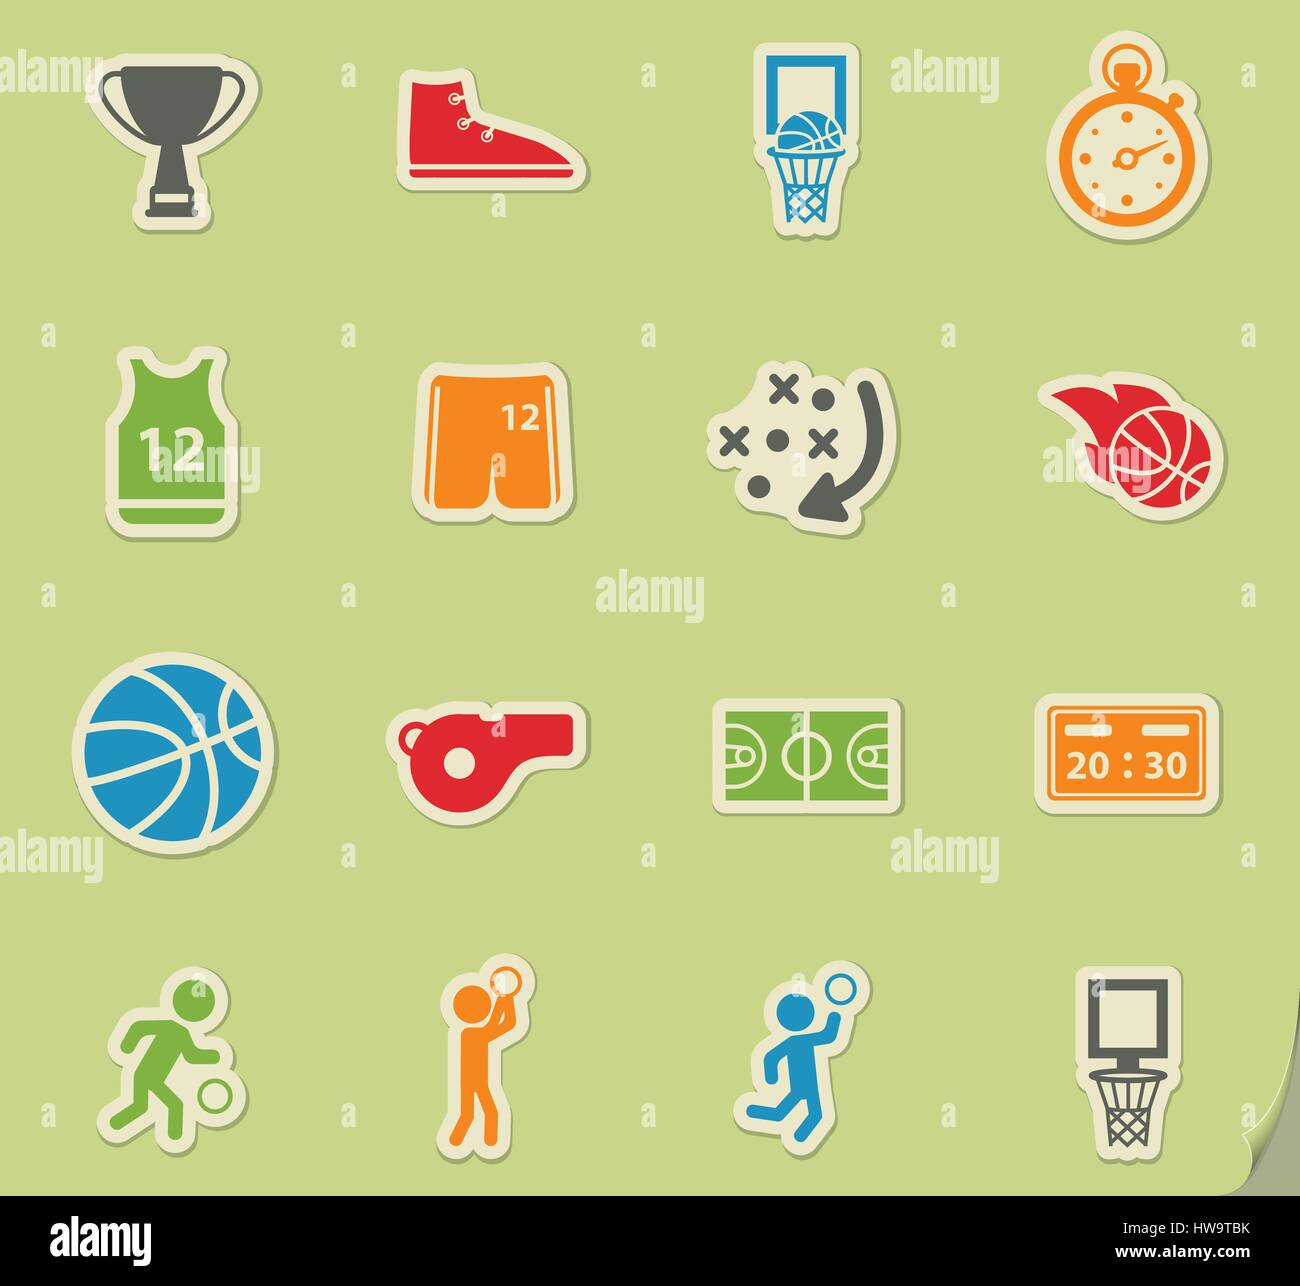 Basketball simply symbol for web icons and user interface stock basketball simply symbol for web icons and user interface biocorpaavc Choice Image